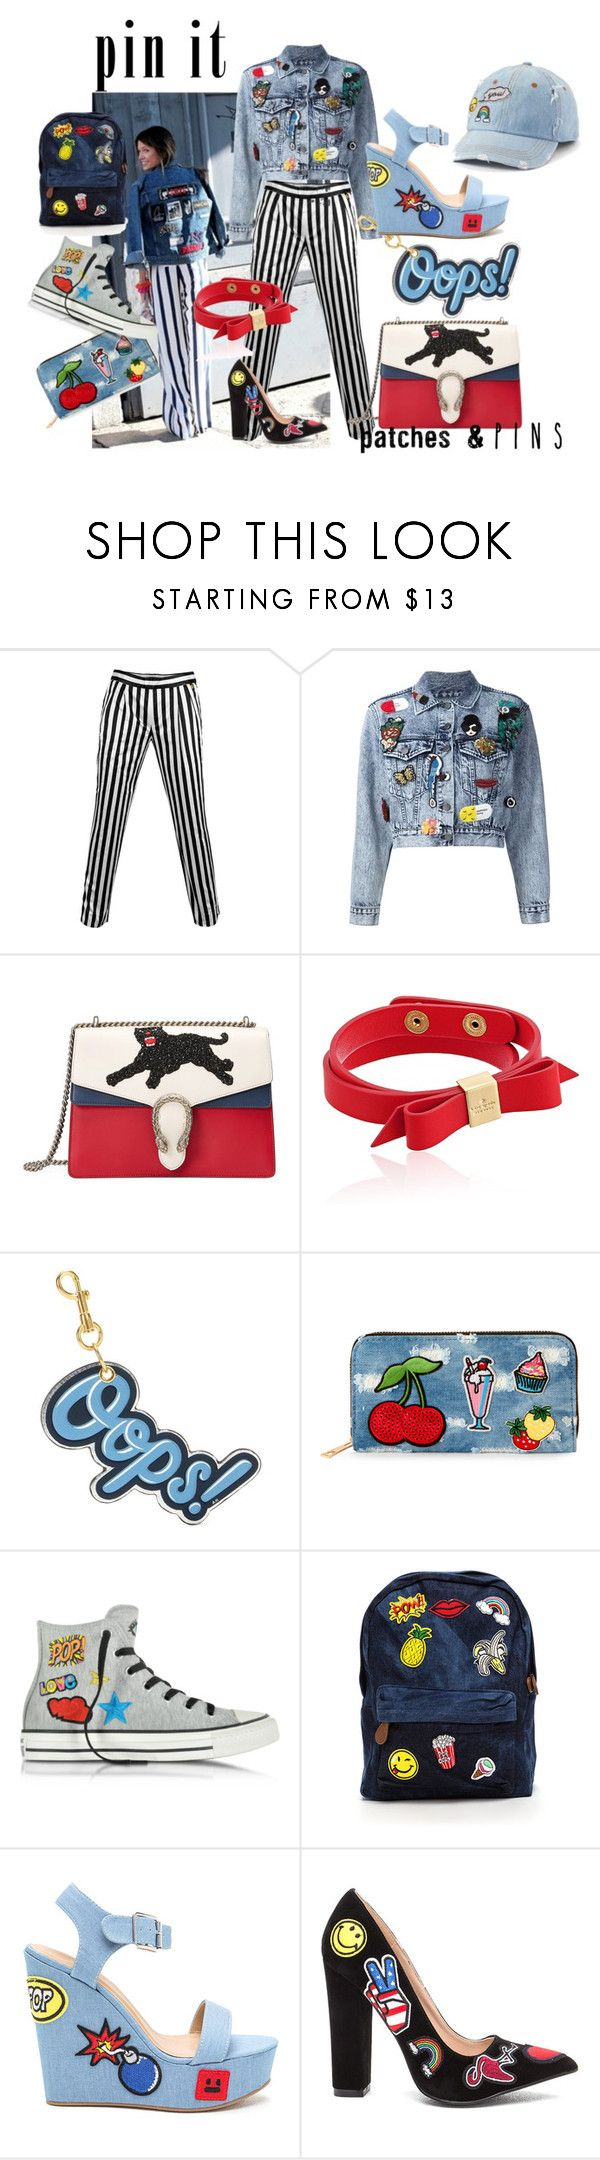 """""""Senza titolo #63"""" by tulipano89 ❤ liked on Polyvore featuring .mcma., Alice + Olivia, Gucci, Kate Spade, Anya Hindmarch, Viola, Converse and SO"""